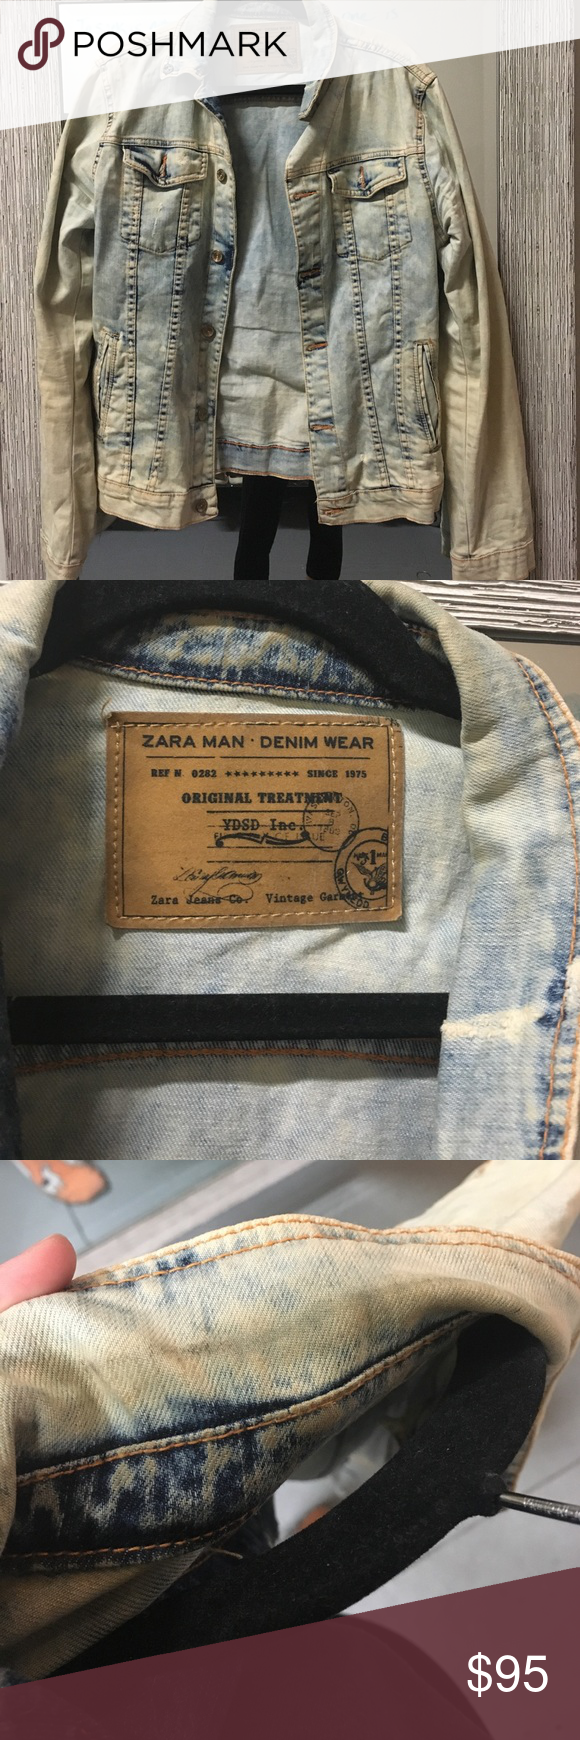 """ZARA MENS DENIM JACKET Great quality. Slight neck stain, can't tell if that was from wear, or part of the """"distressed look""""....98% cotton, 2% elastaine Zara Jackets & Coats Military & Field"""